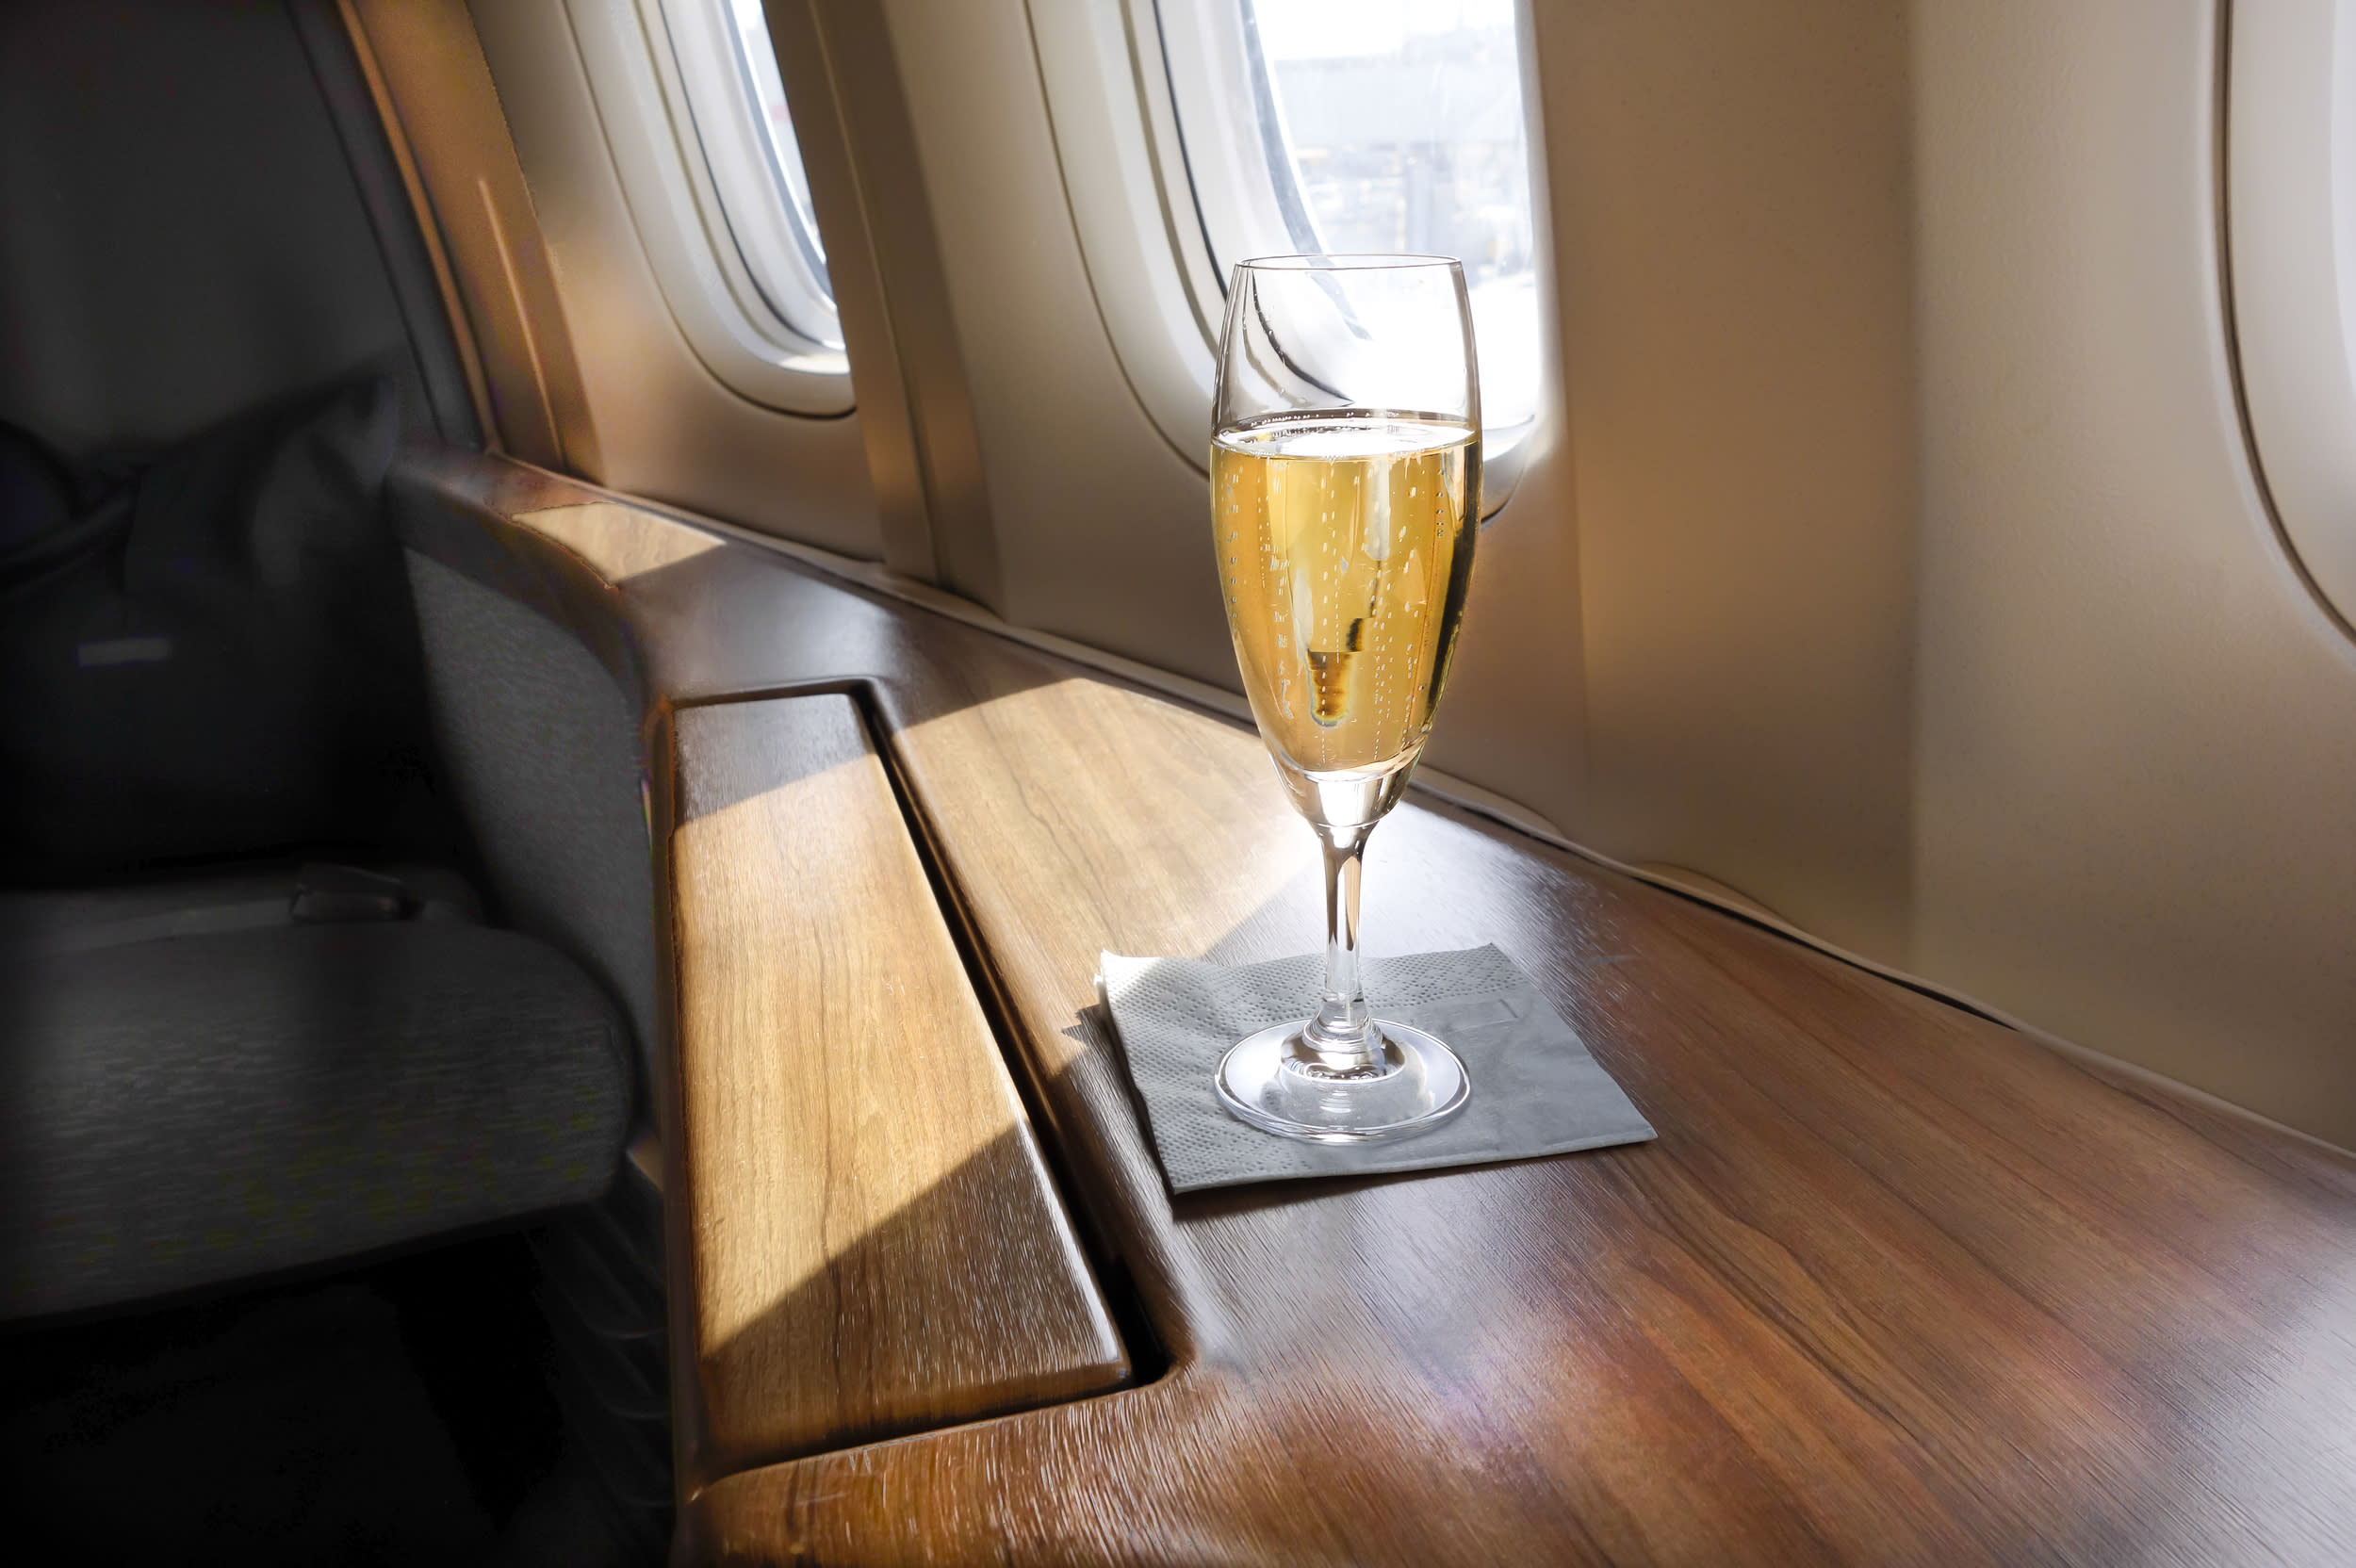 """Thought <a href=""""https://www.aol.co.uk/travel/tag/unruly-passenger/"""" target=""""_blank"""">bad behaviour</a> was only found in economy? We've rounded up the worst first-class flight passengers that will make you think again. From wealthy travellers demanding champagne to thieving flyers selling on the silver cutlery, these are the unruliest first-class passengers ever...."""